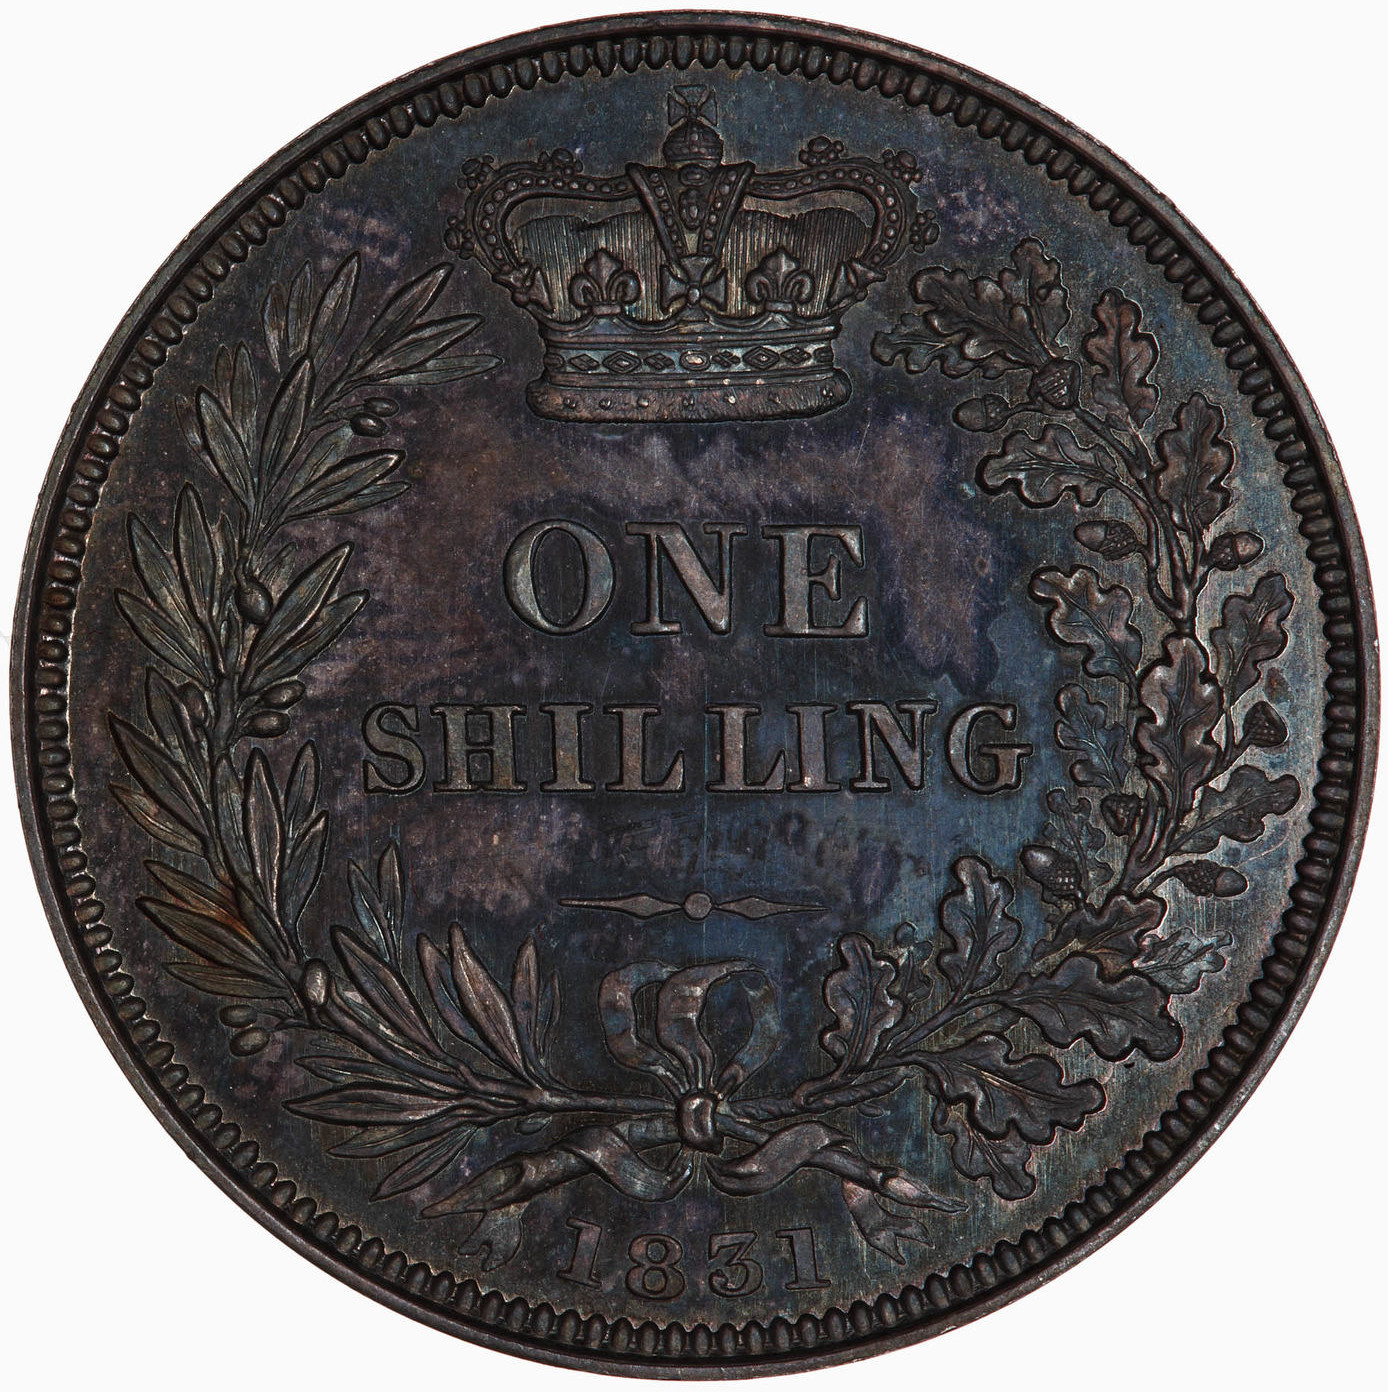 Shilling: Photo Proof Coin - Shilling, William IV, Great Britain, 1831